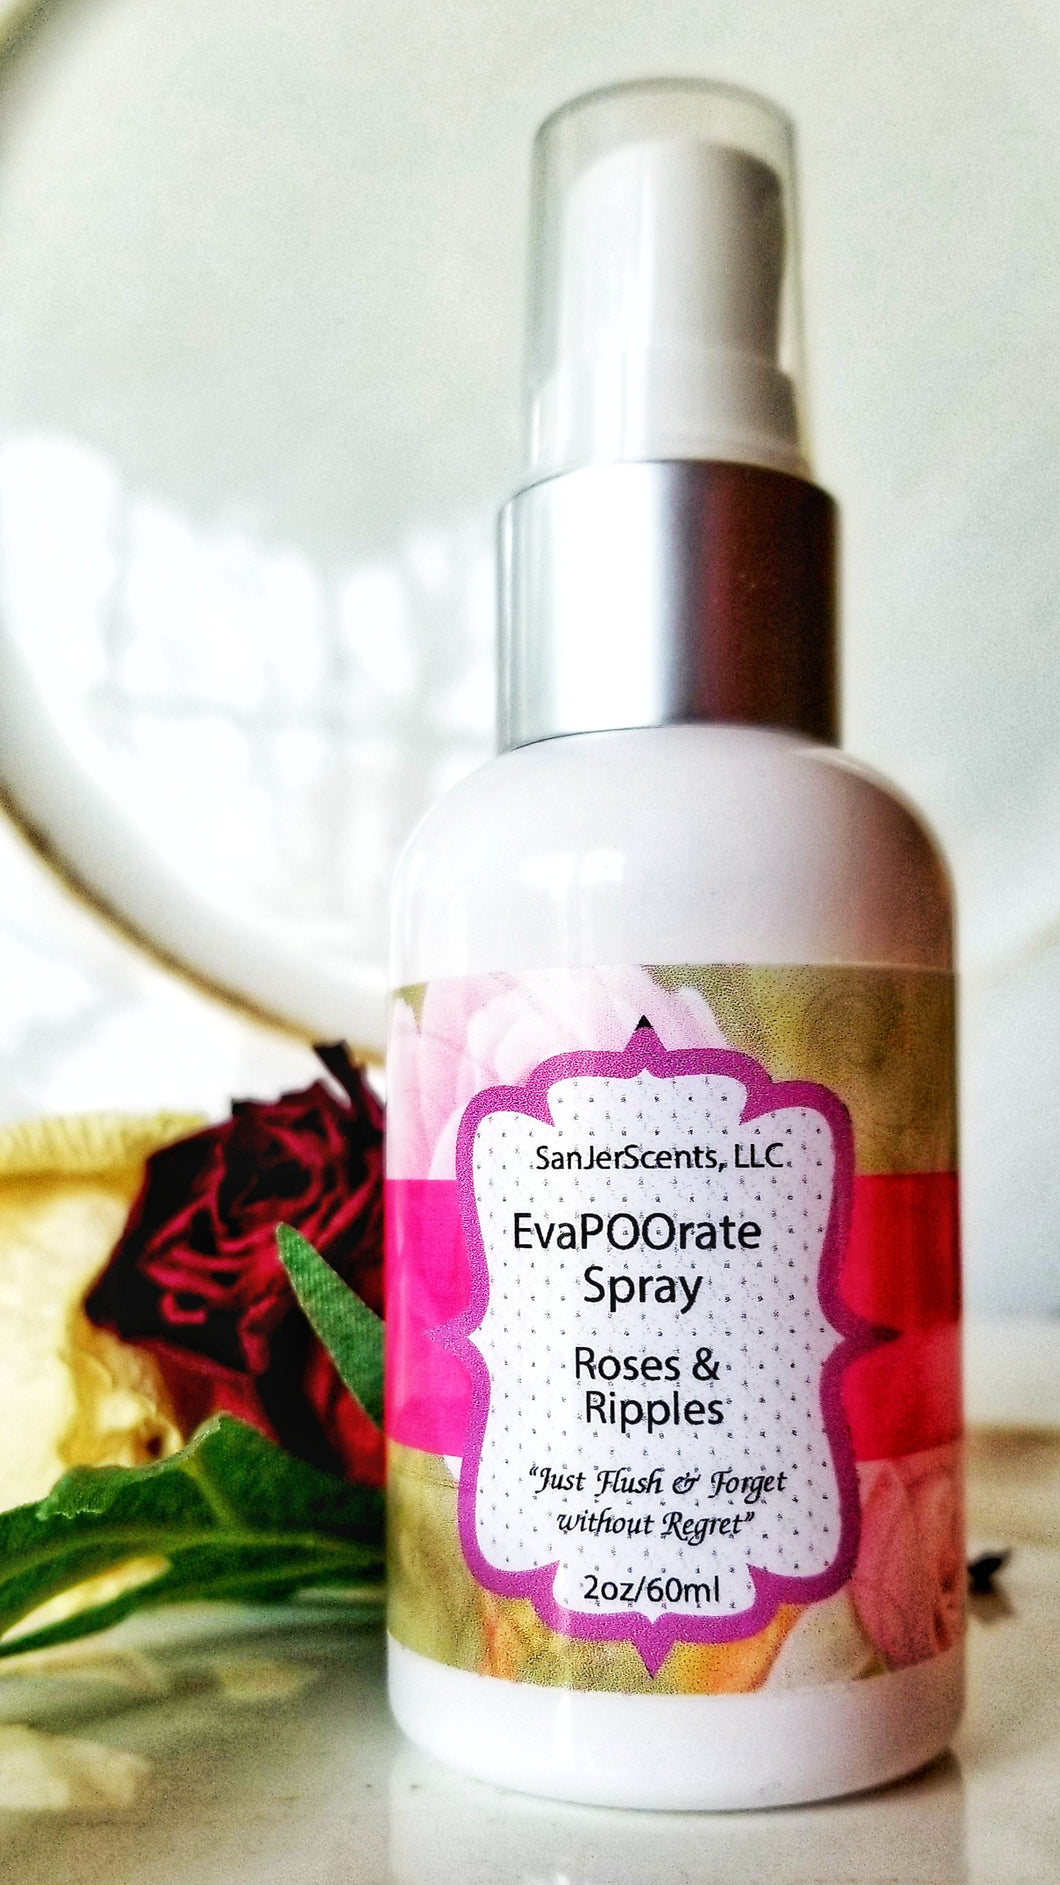 EvaPOOrate Toilet Spray